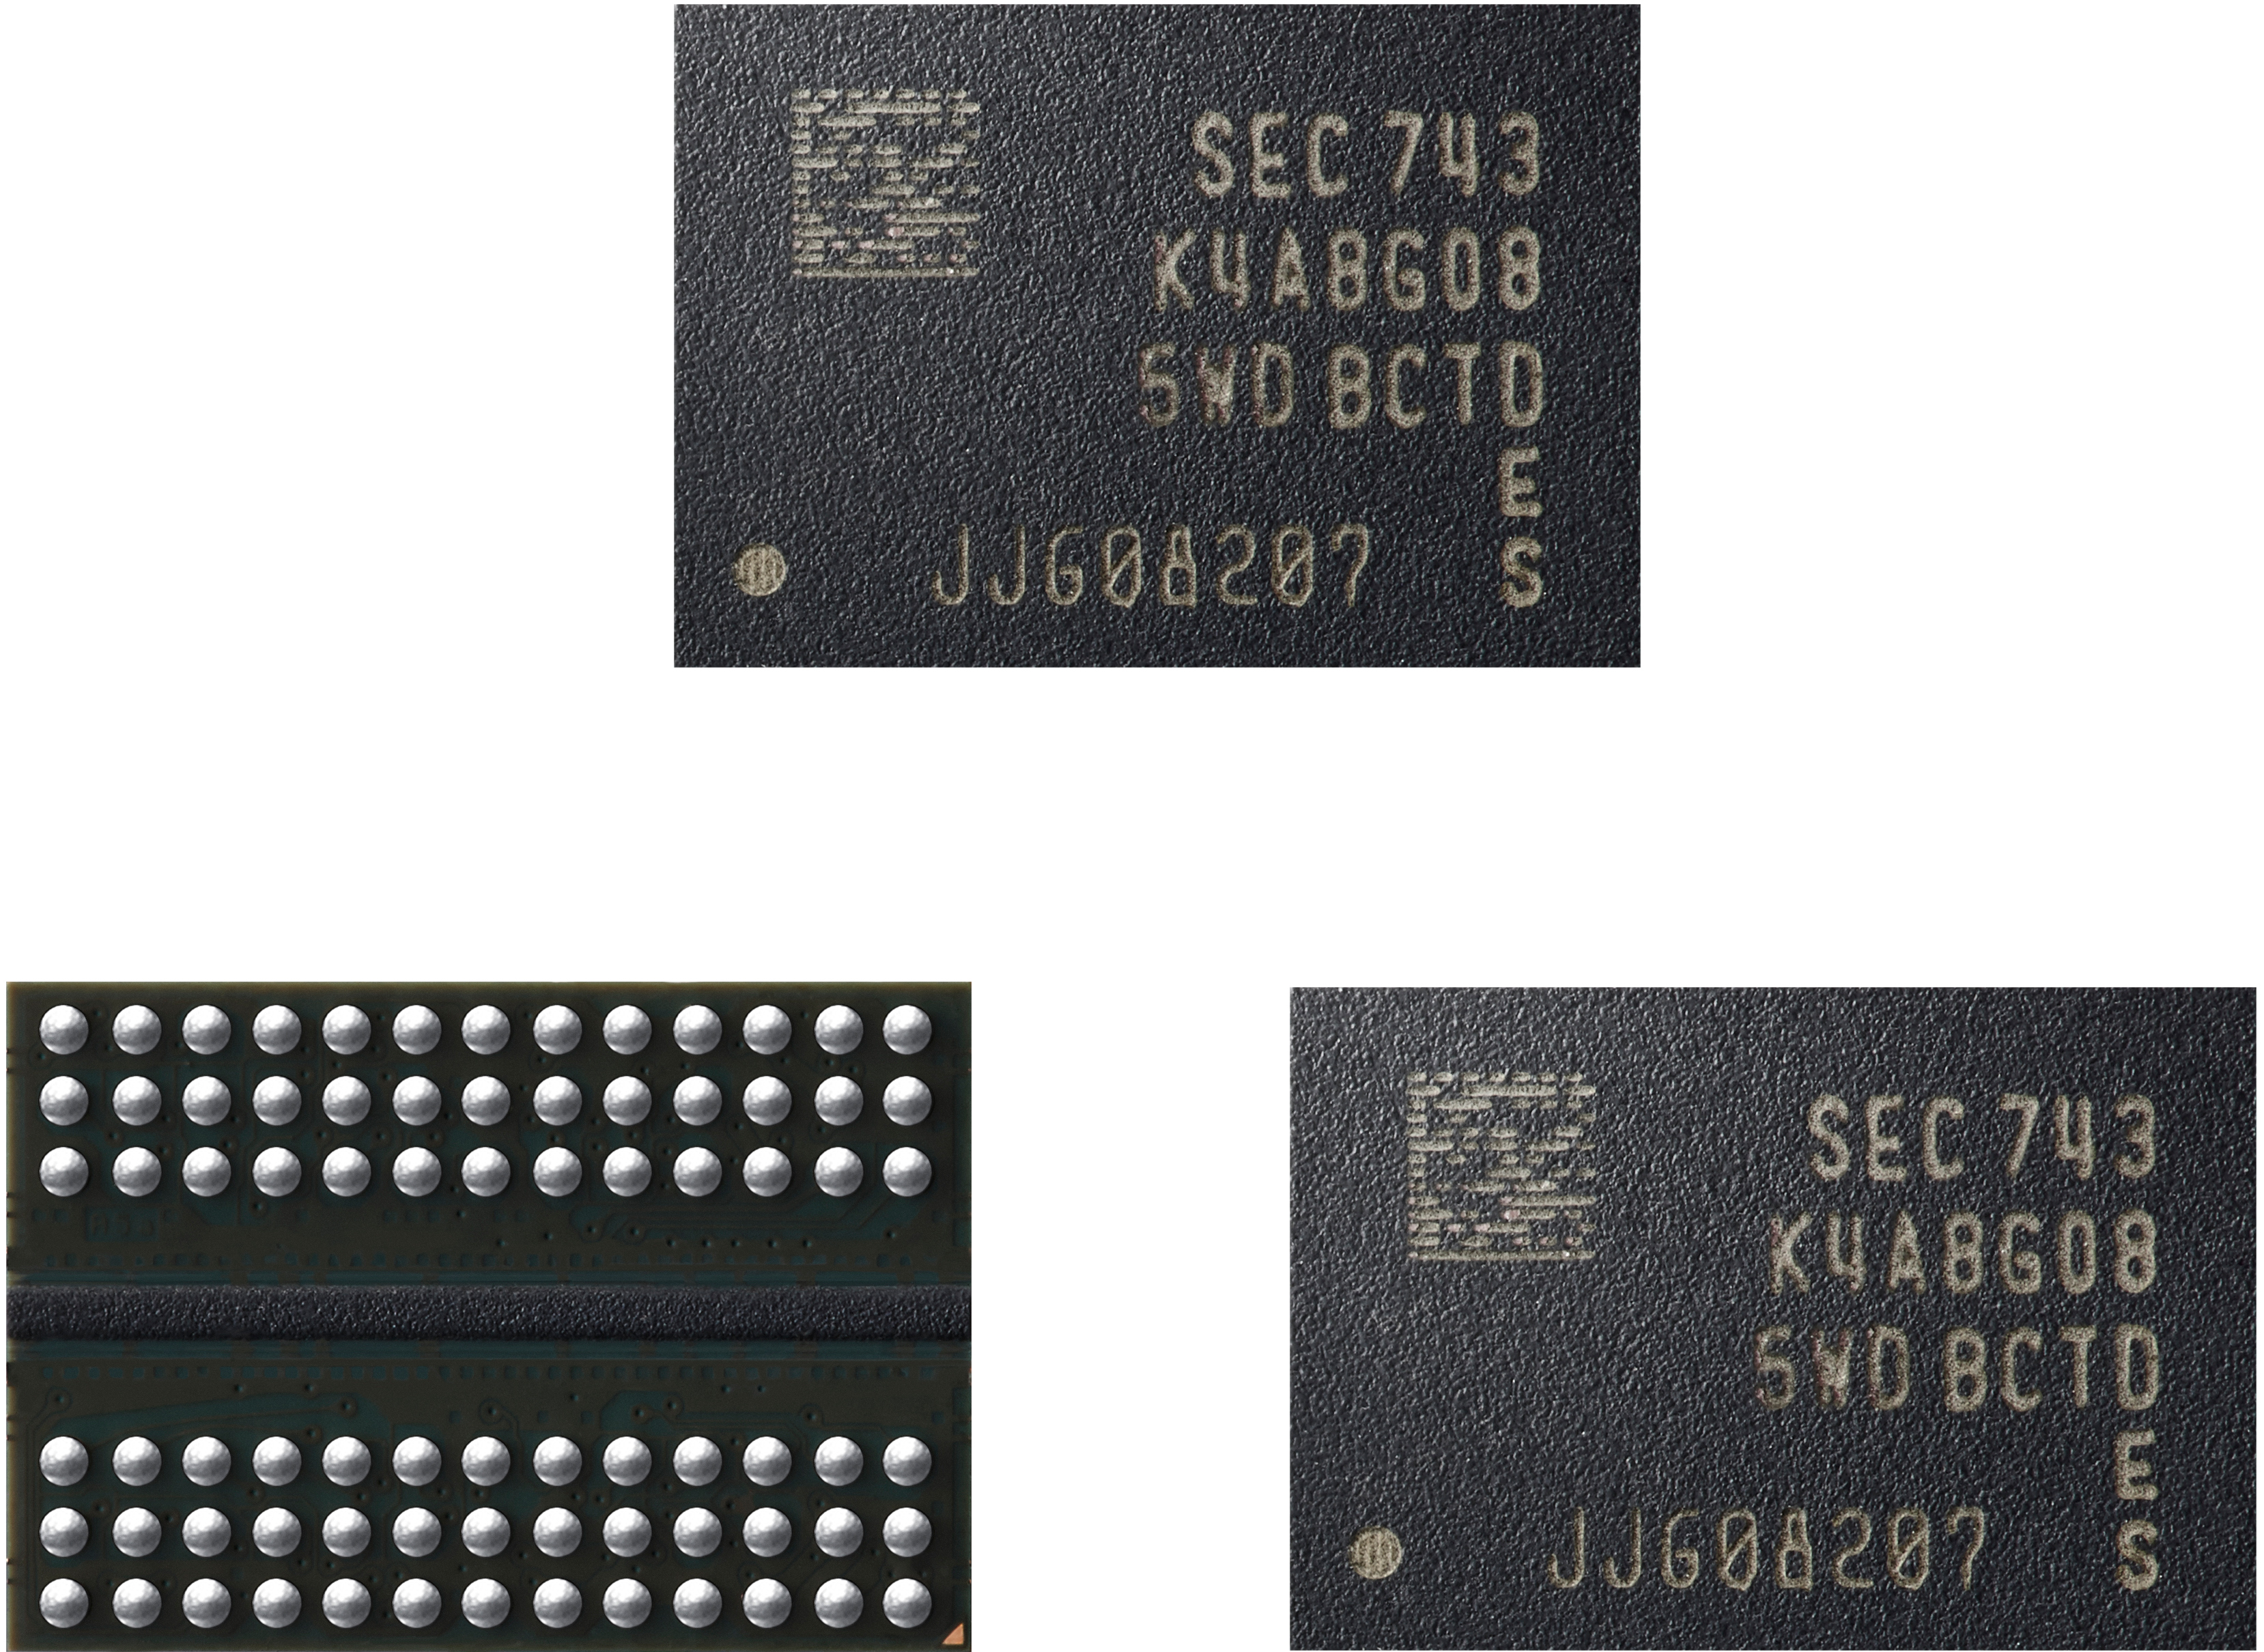 Samsung Launches The World's Smallest DRAM Chip